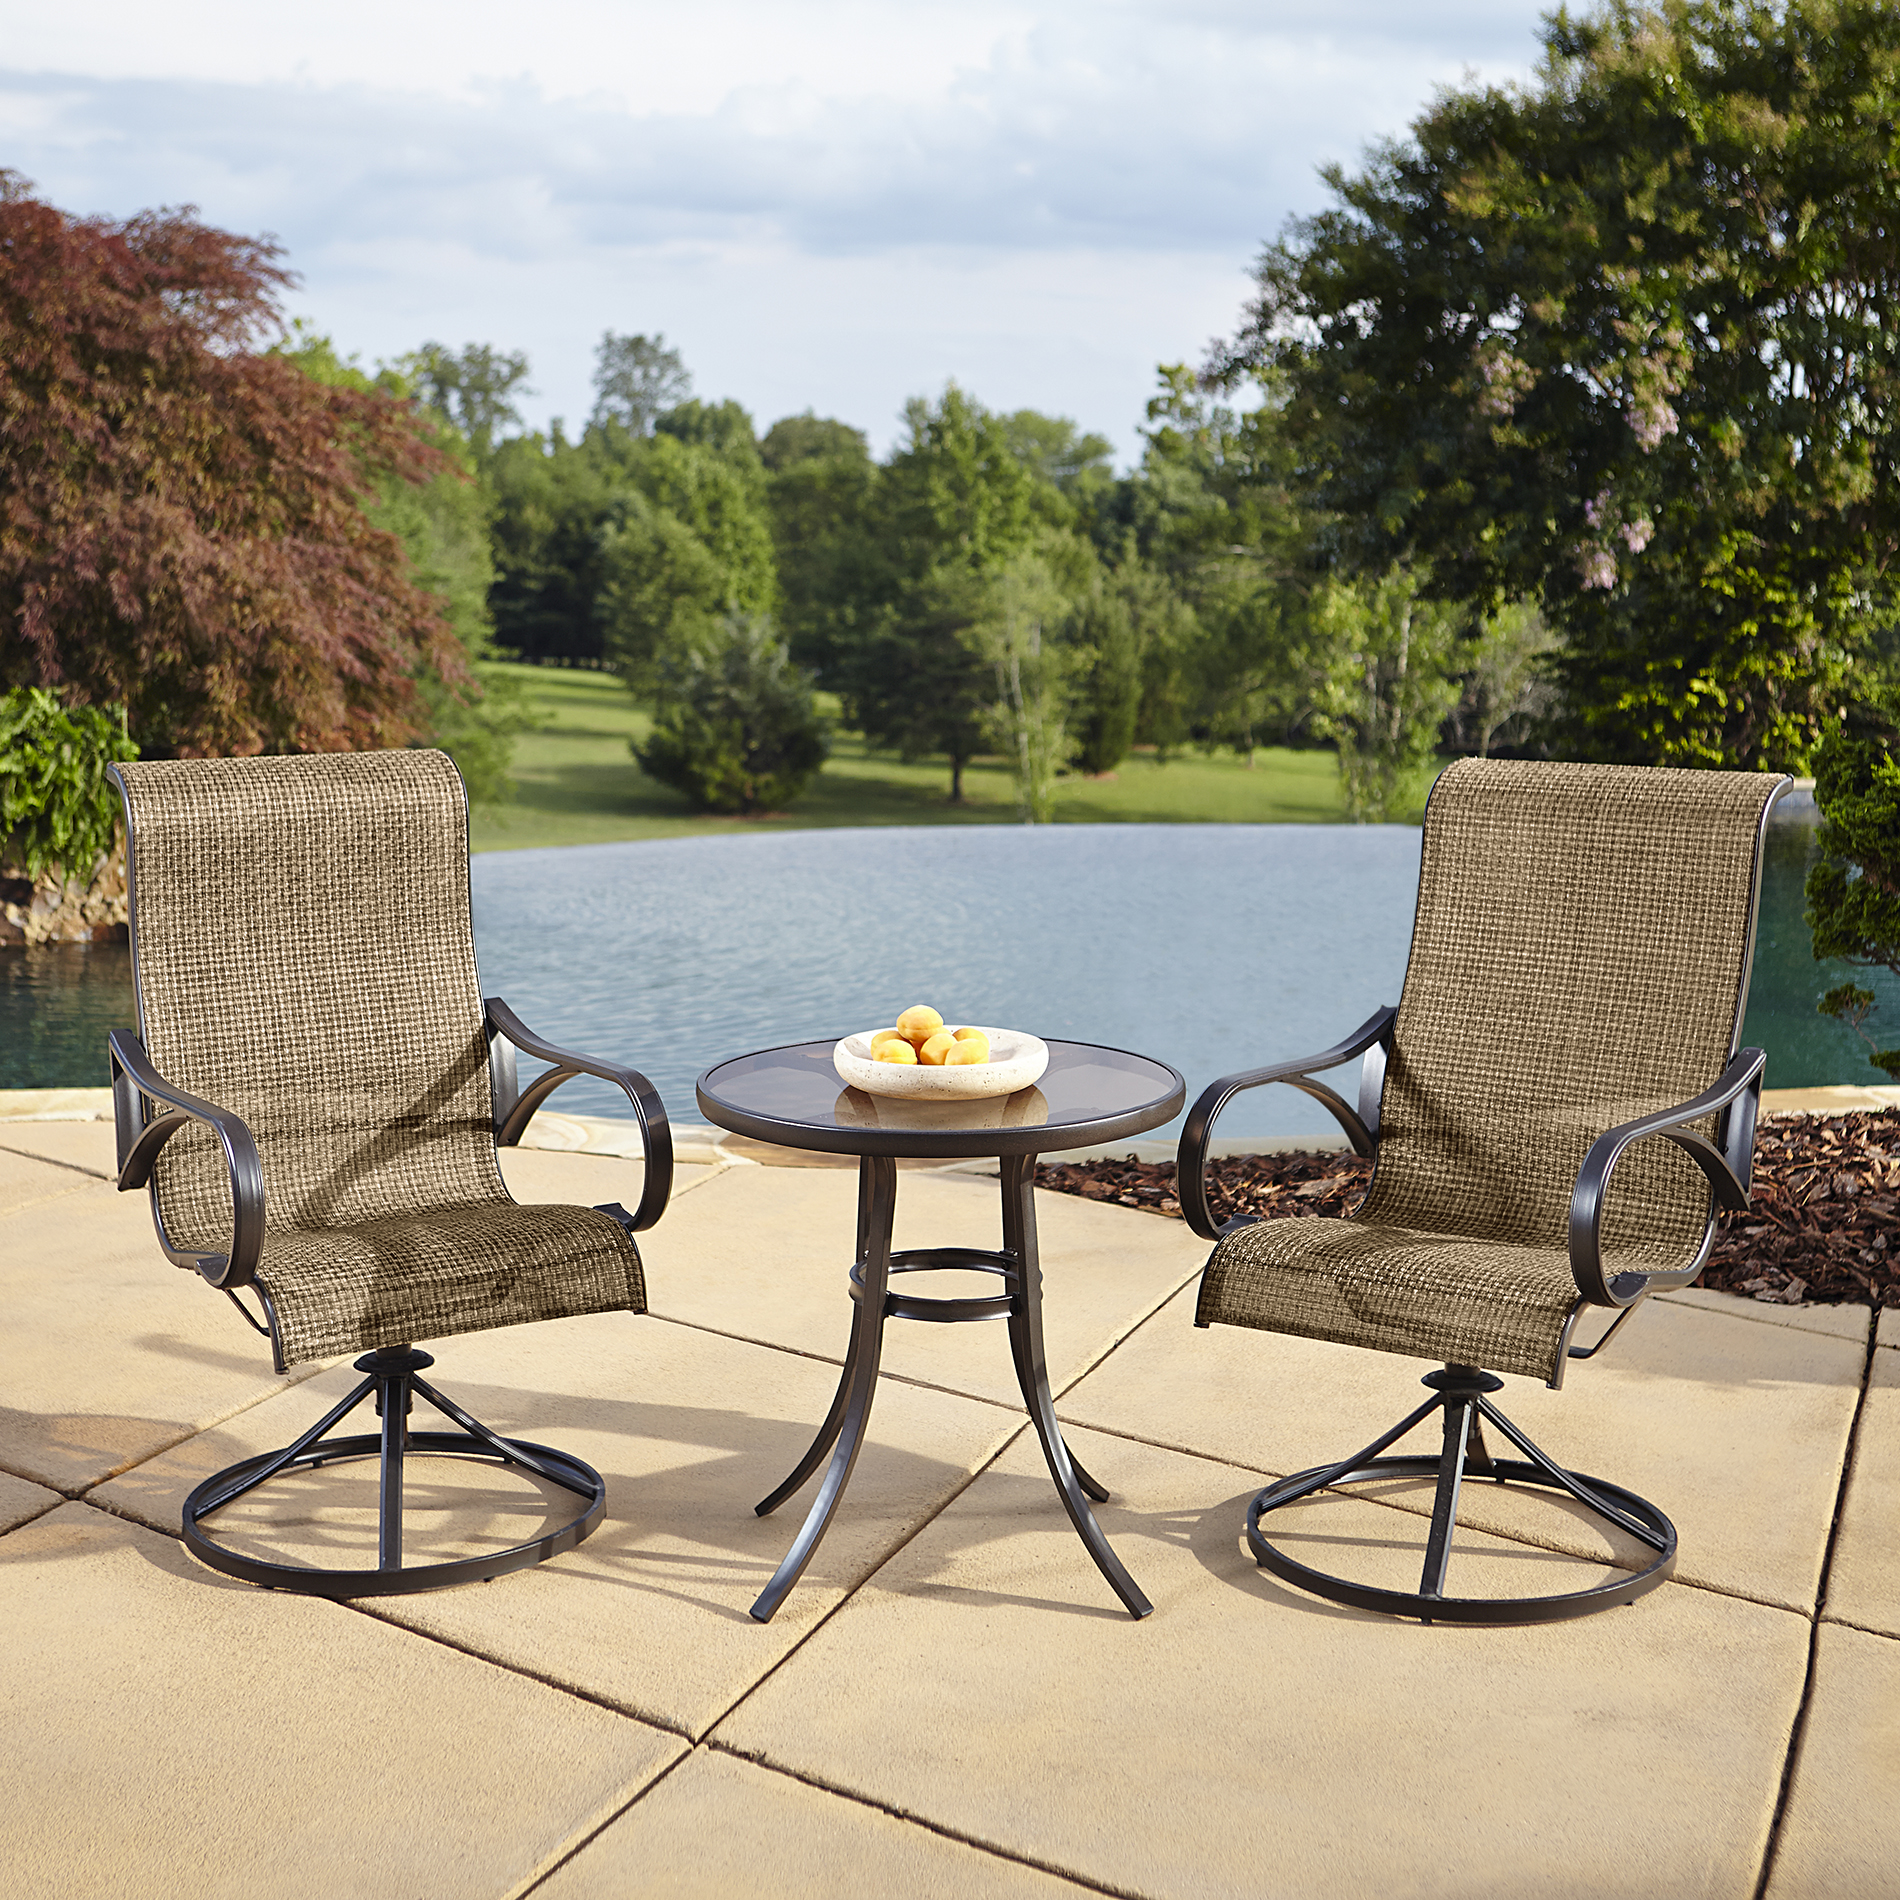 sling motion patio chairs folding chair by regina spektor grand resort oak hill 3pc bistro with limited availability